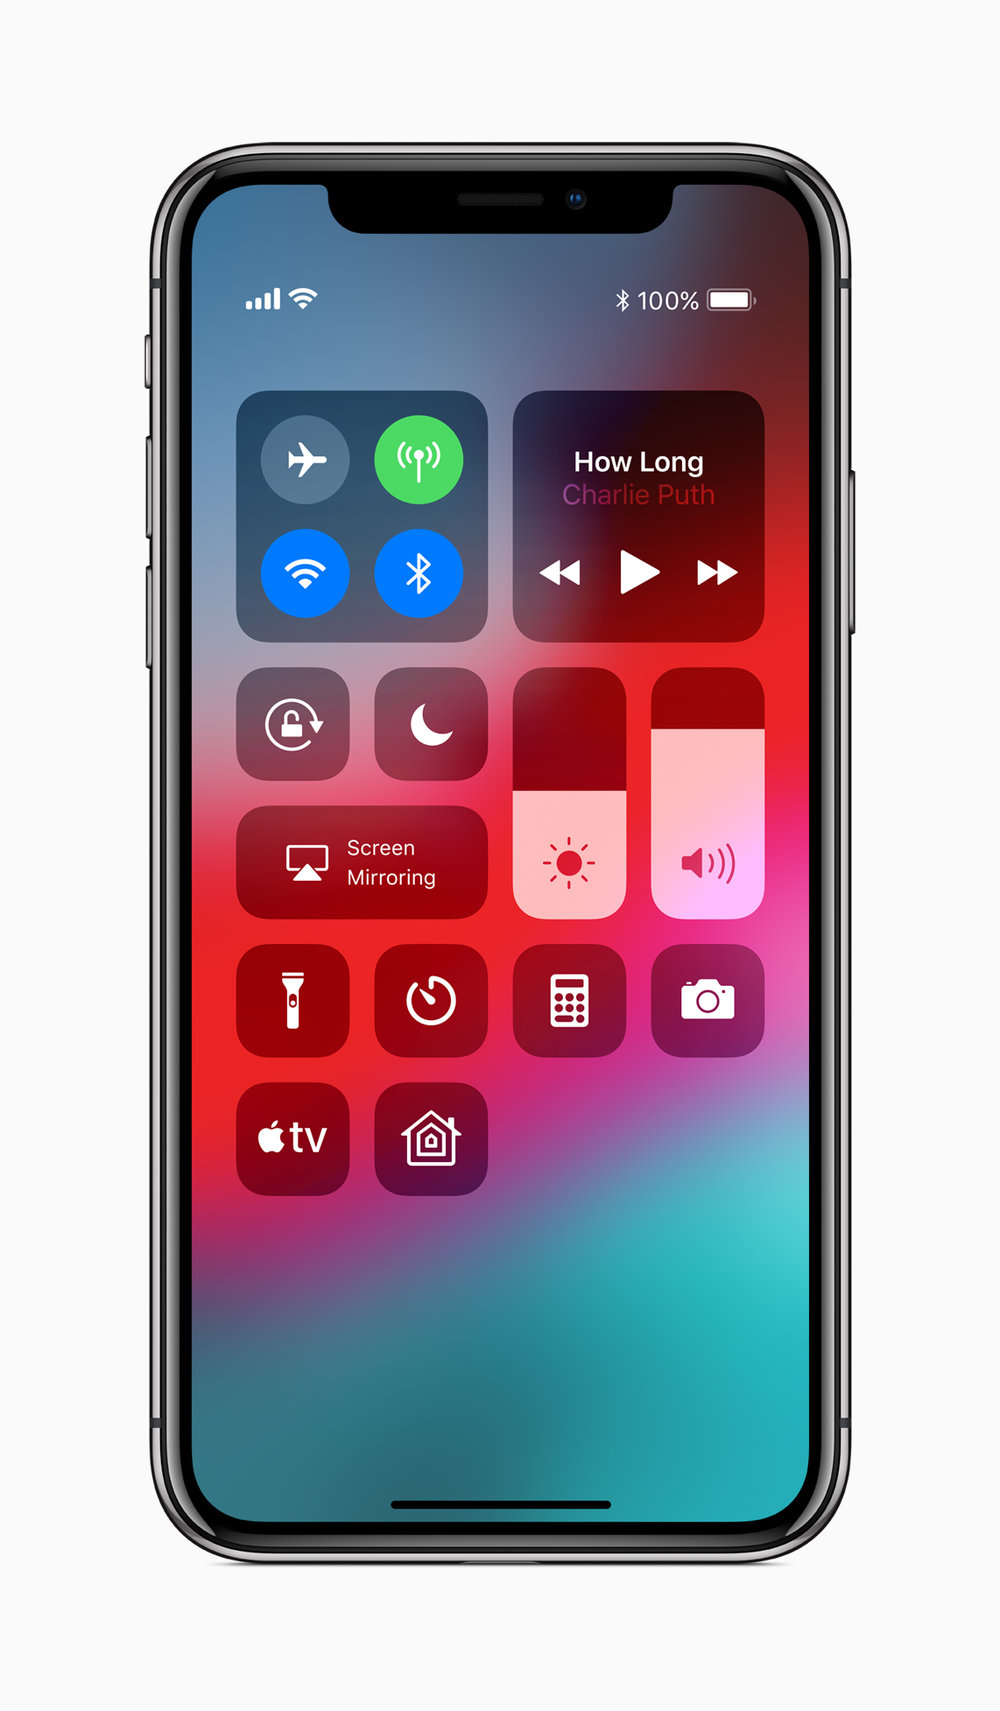 For Apple TV users, the Apple TV remote app is automatically added to the iOS 12 control center